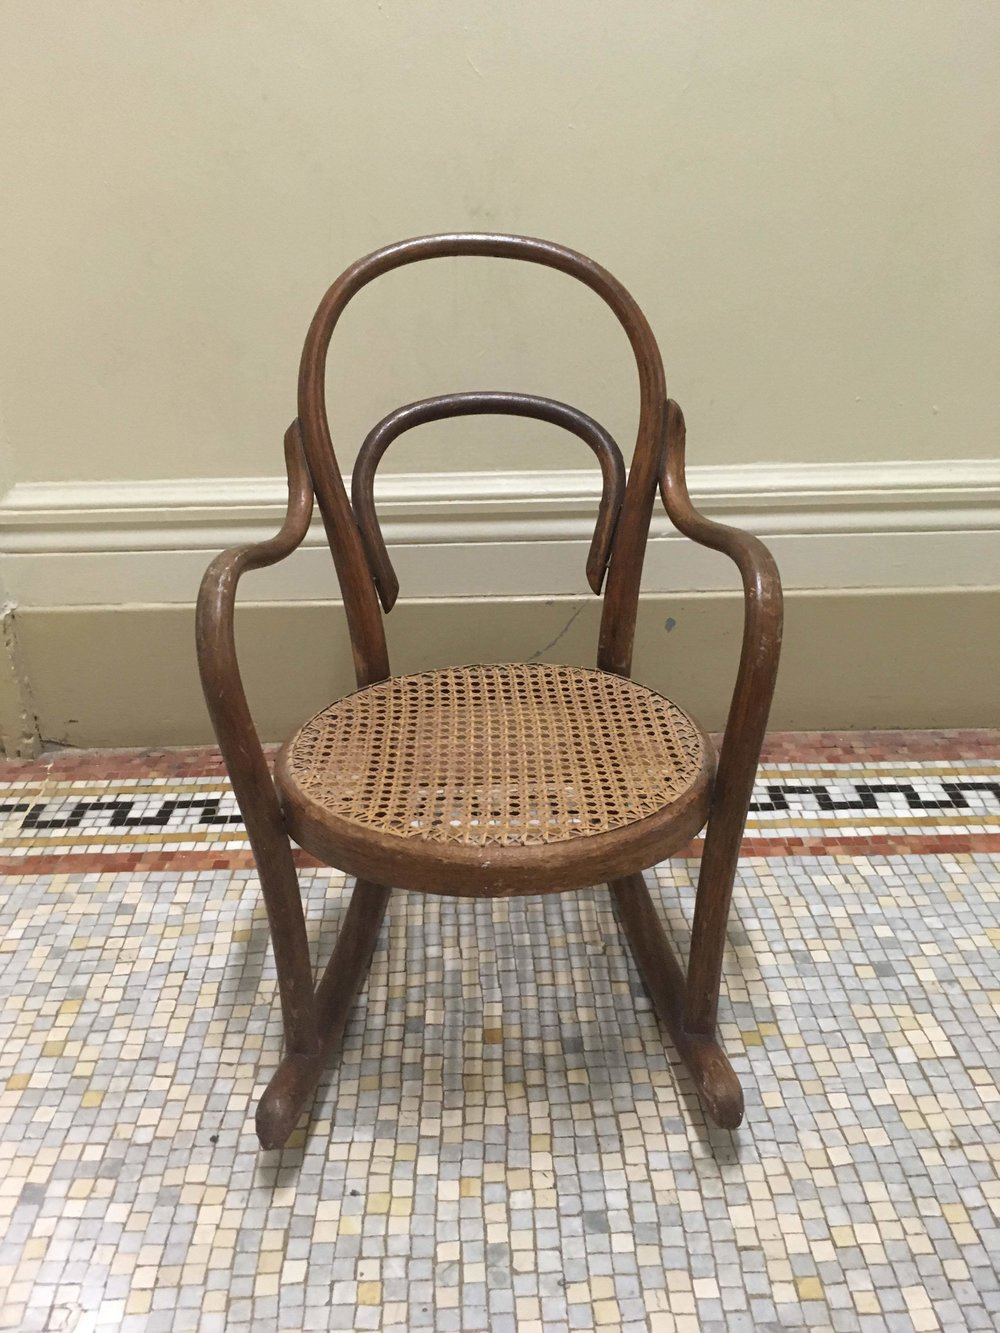 Thonet Rocker Thonet Unknown Production German 1950s rattan and wood H 24 in, W 14 in, D 25 in, Seat H 11 in LIST PRICE: Cube $400 (sale $50) DESIGNER DISCOUNT PRICE:  LEAD TIME: 3-5 Days QUANTITY IN STOCK: 1 ONLINE PLATFORMS: kM Web, Artsy, 1st Dibs